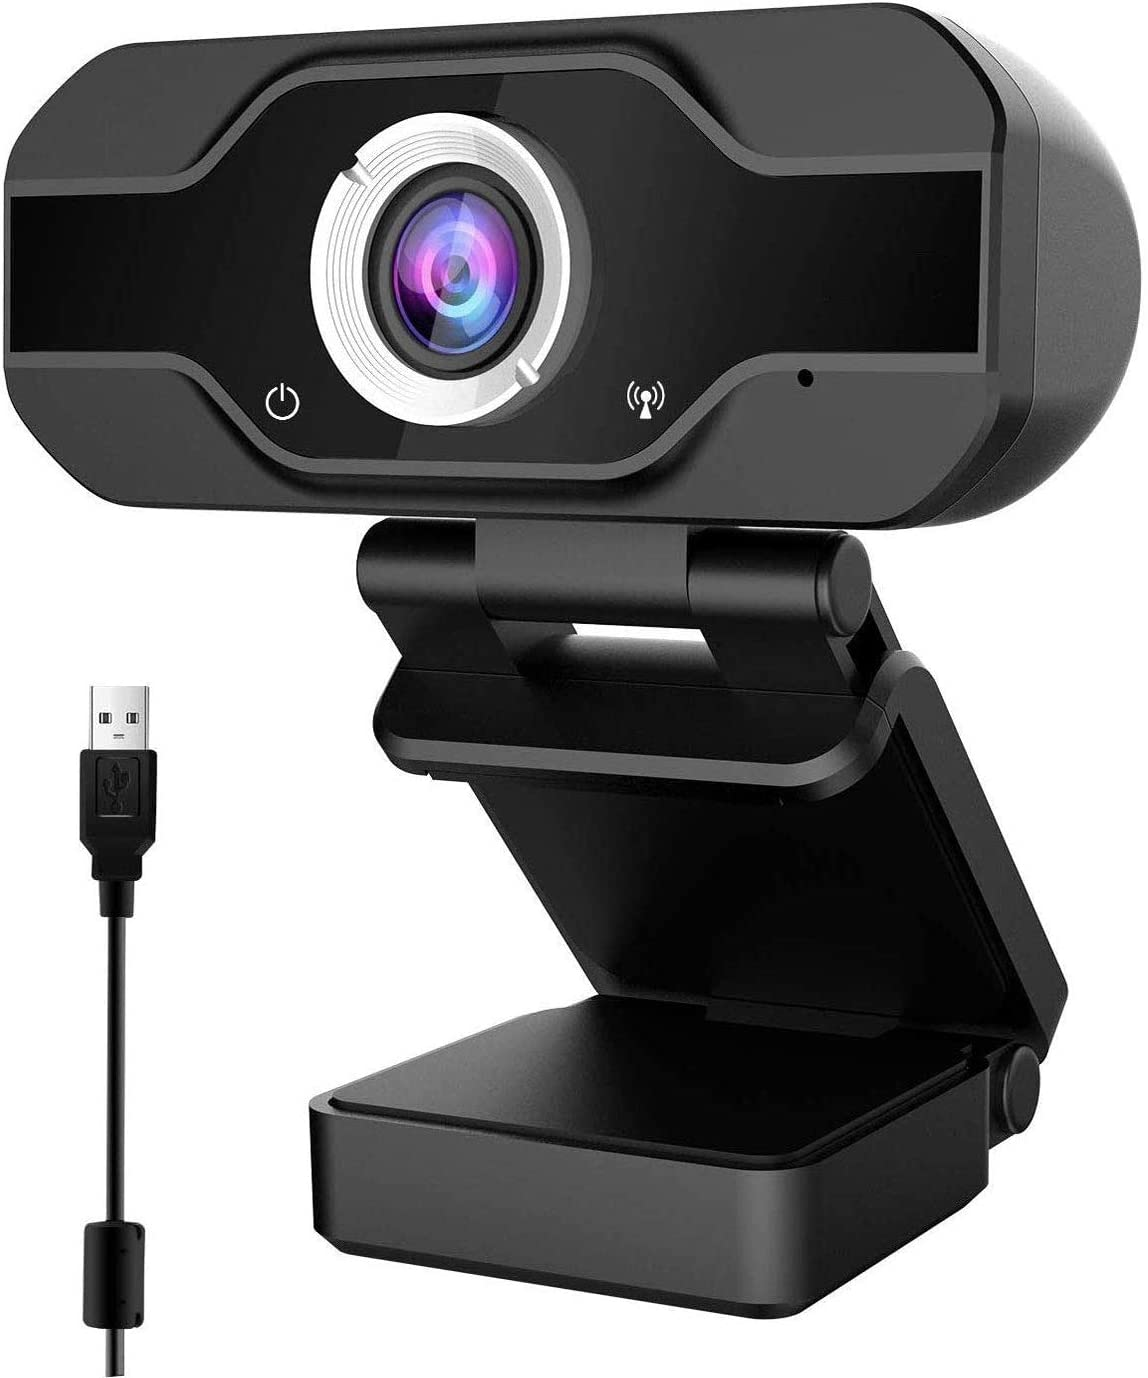 1080P PC Webcam with Microphone, Webcam for Laptop or Desktop Webcam, USB Computer Camera, Gaming Conferencing, HD Video Webcam 90-Degree Widescreen Web Camera Black